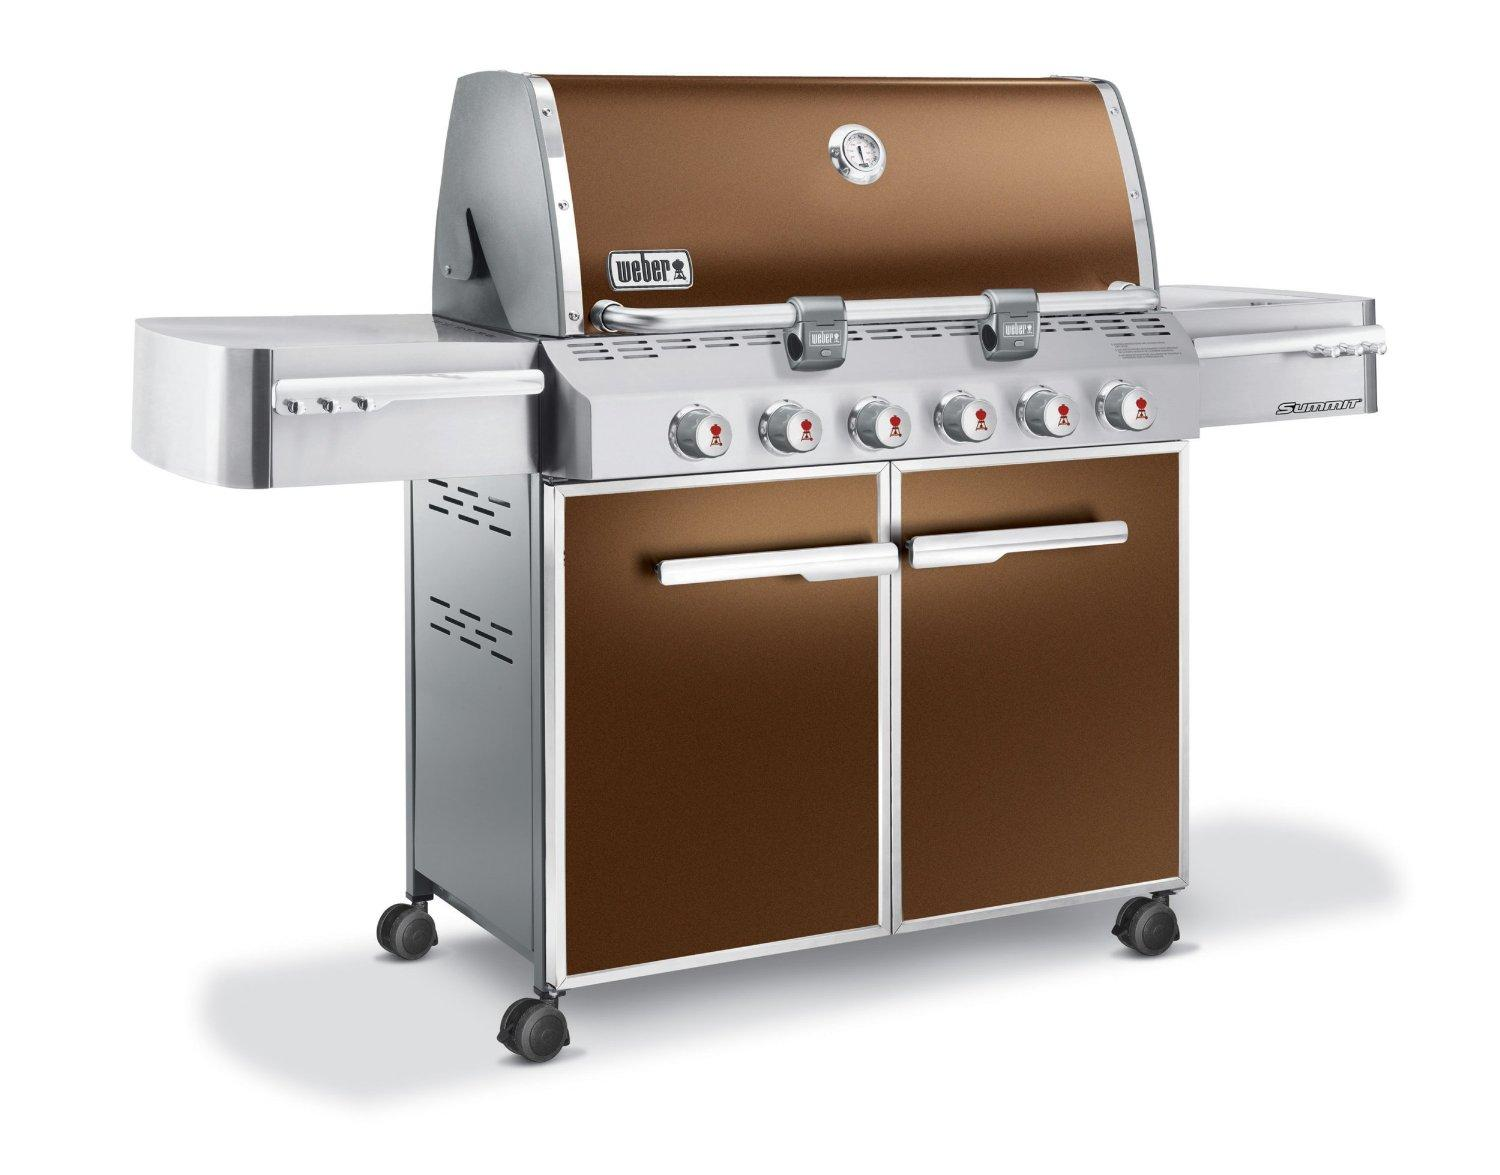 1752001 weber 1752001 summit grills copper liquid propane. Black Bedroom Furniture Sets. Home Design Ideas